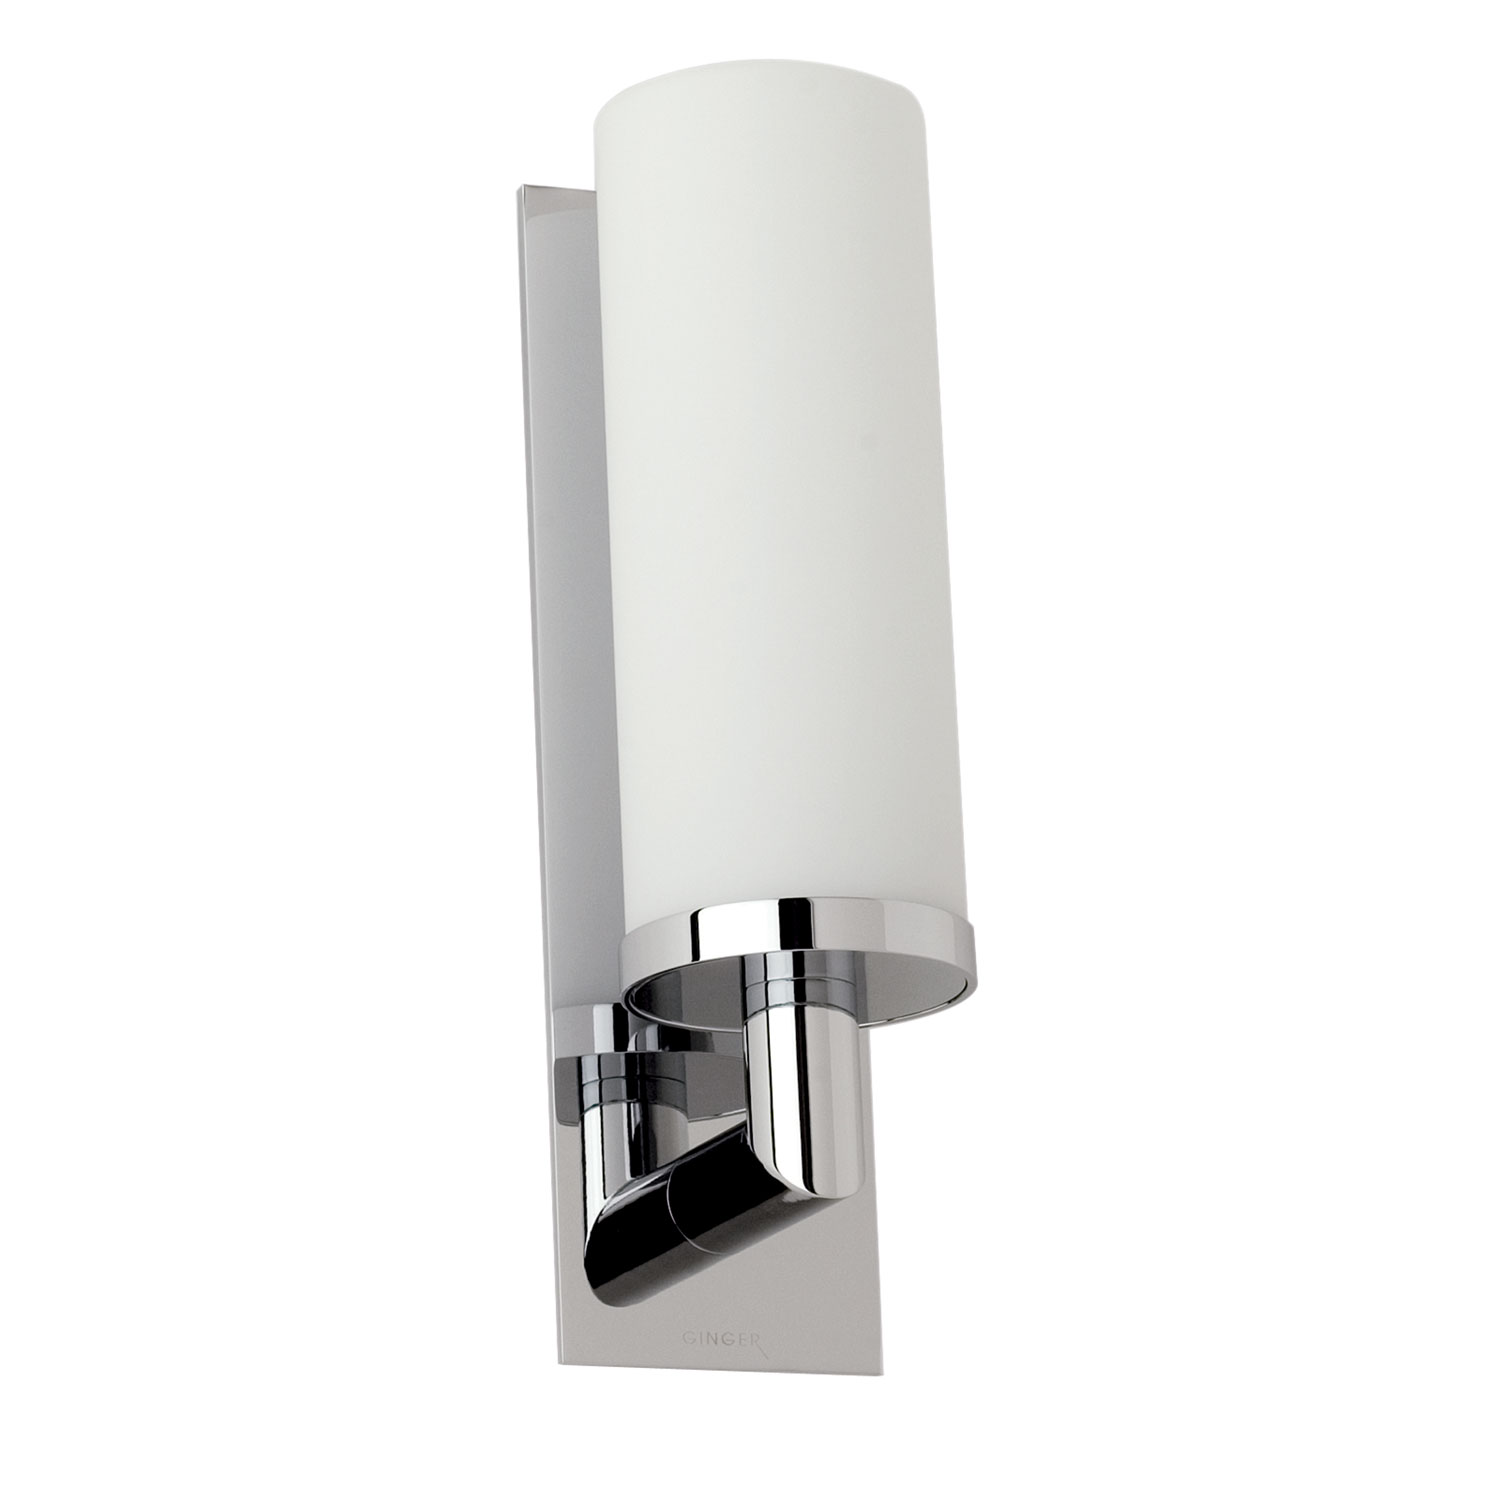 Vanity wall sconce by ginger 2881pc surface vanity wall sconce by ginger 2881pc audiocablefo